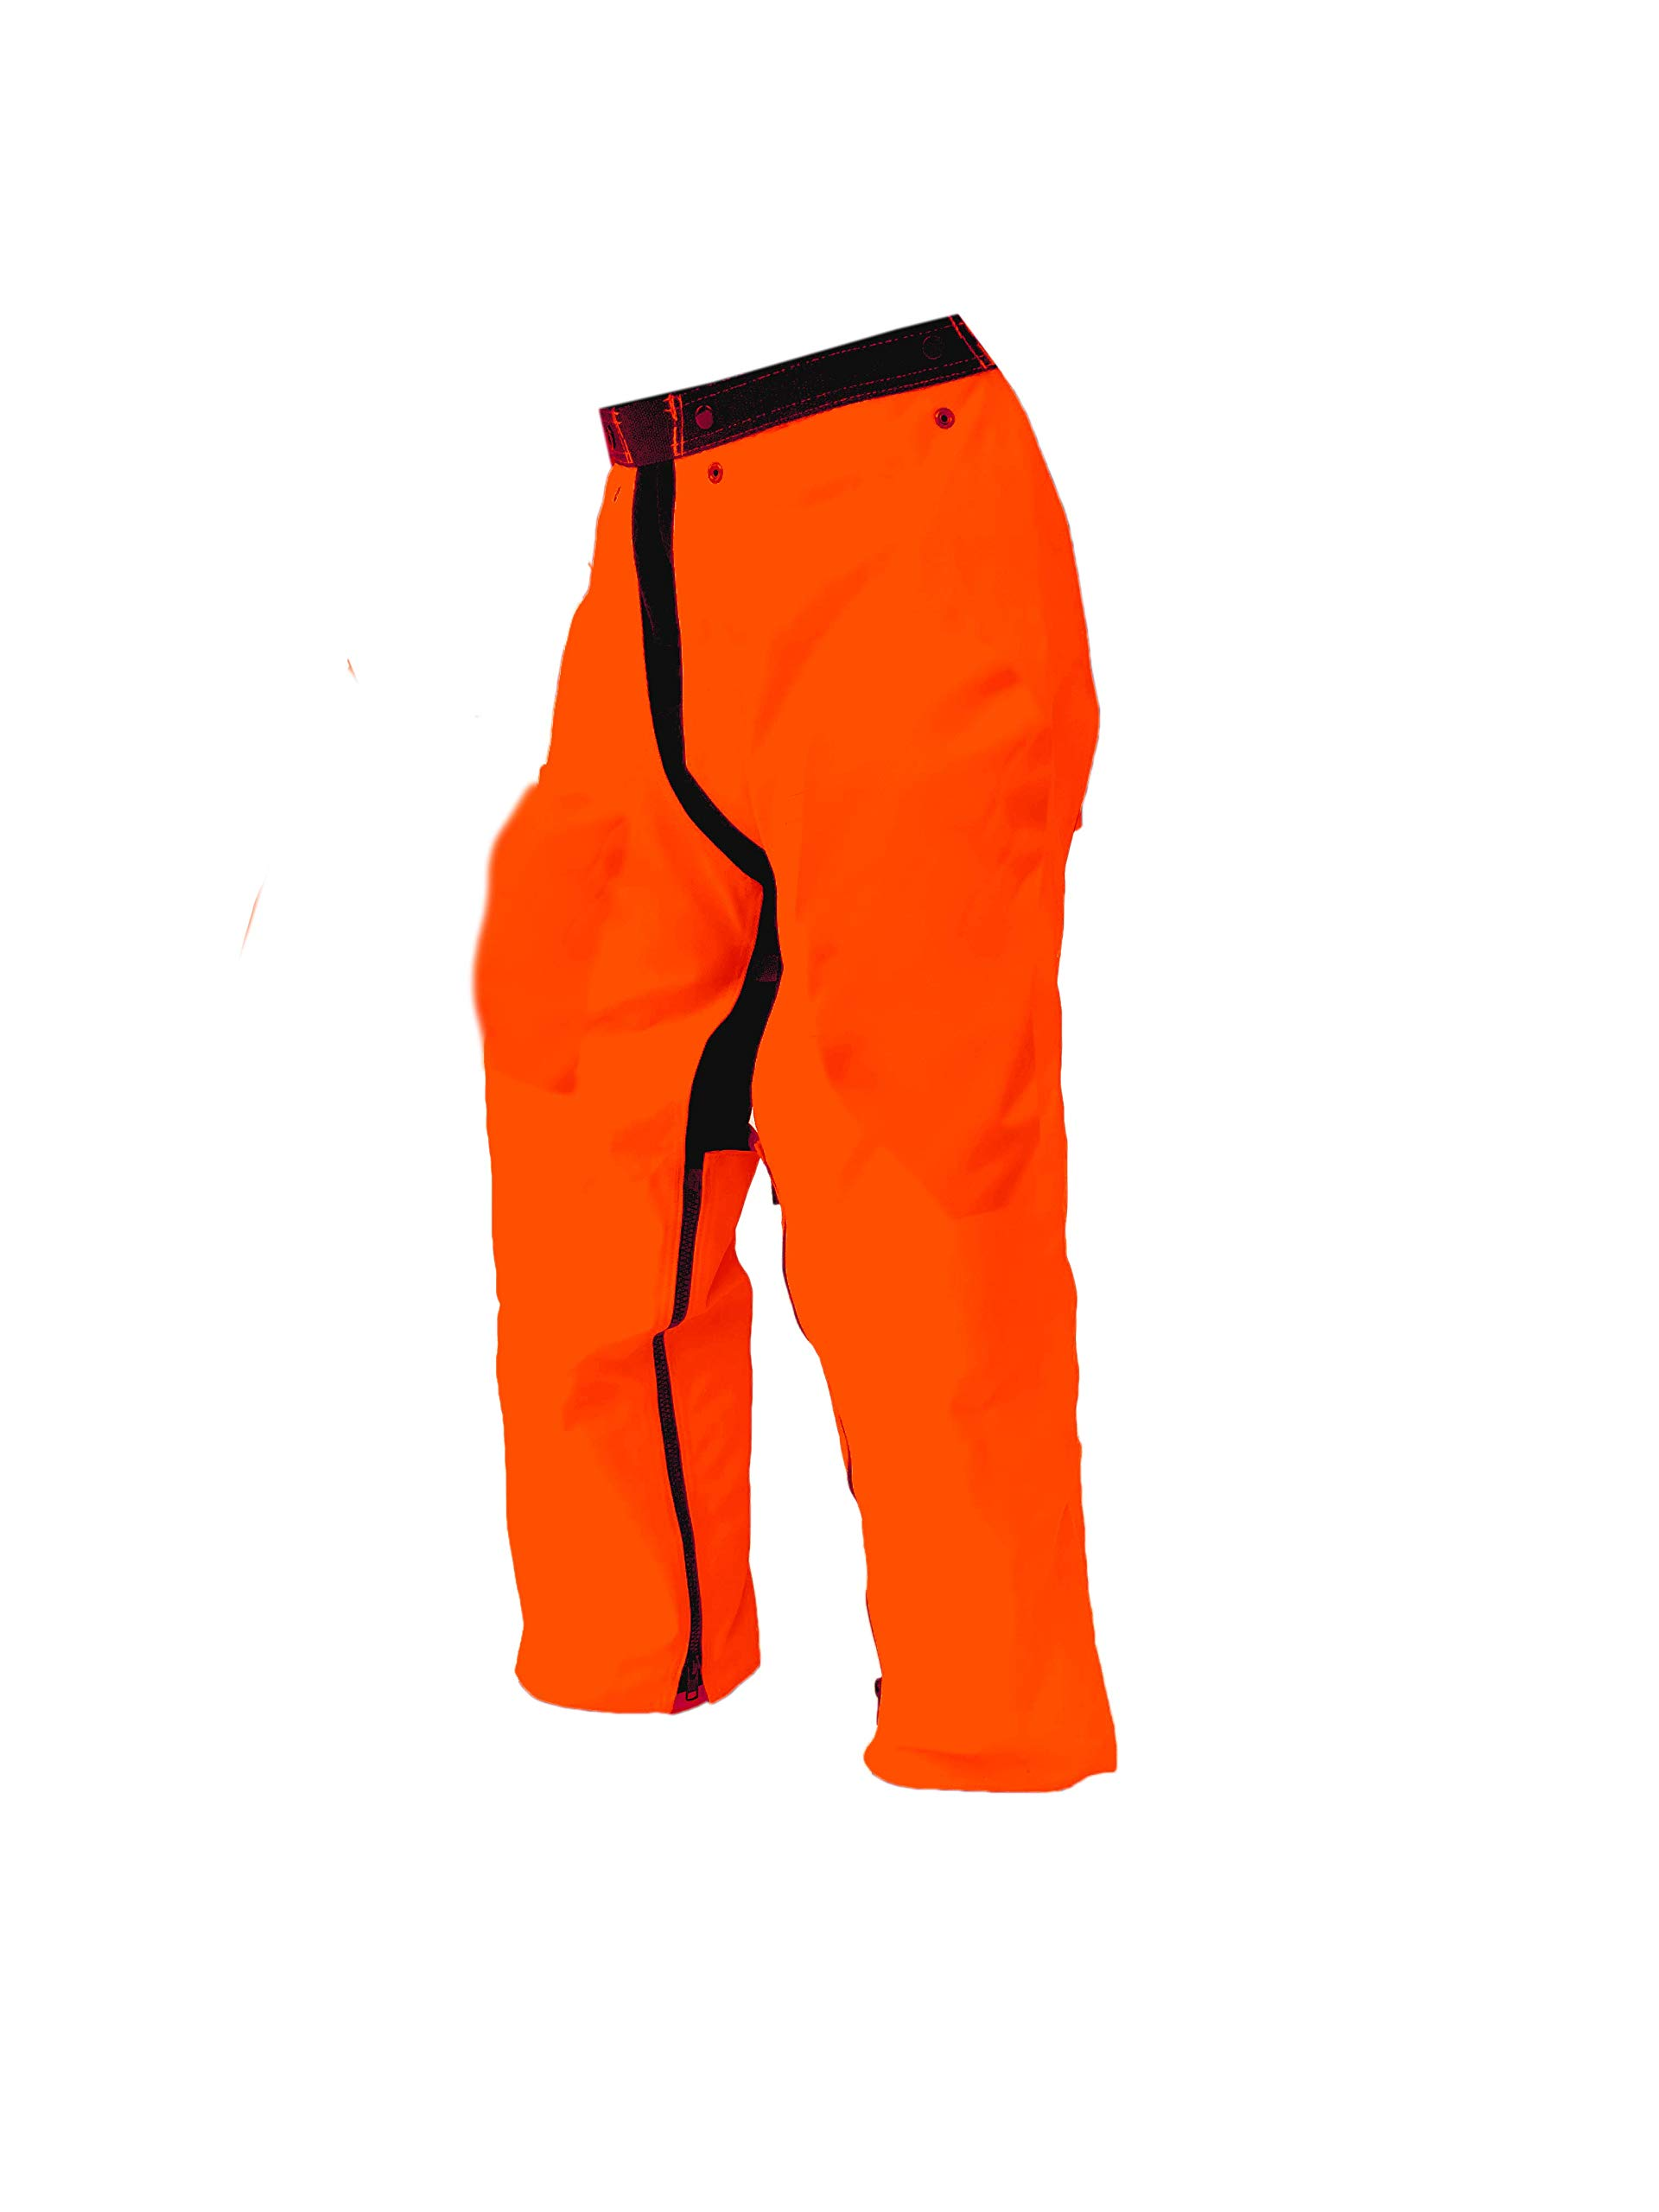 Forester Chainsaw Safety Chaps - Full Wrap Zipper - Orange (Regular (37'') Fits Most 5'4'' to 6' Tall) by Forester